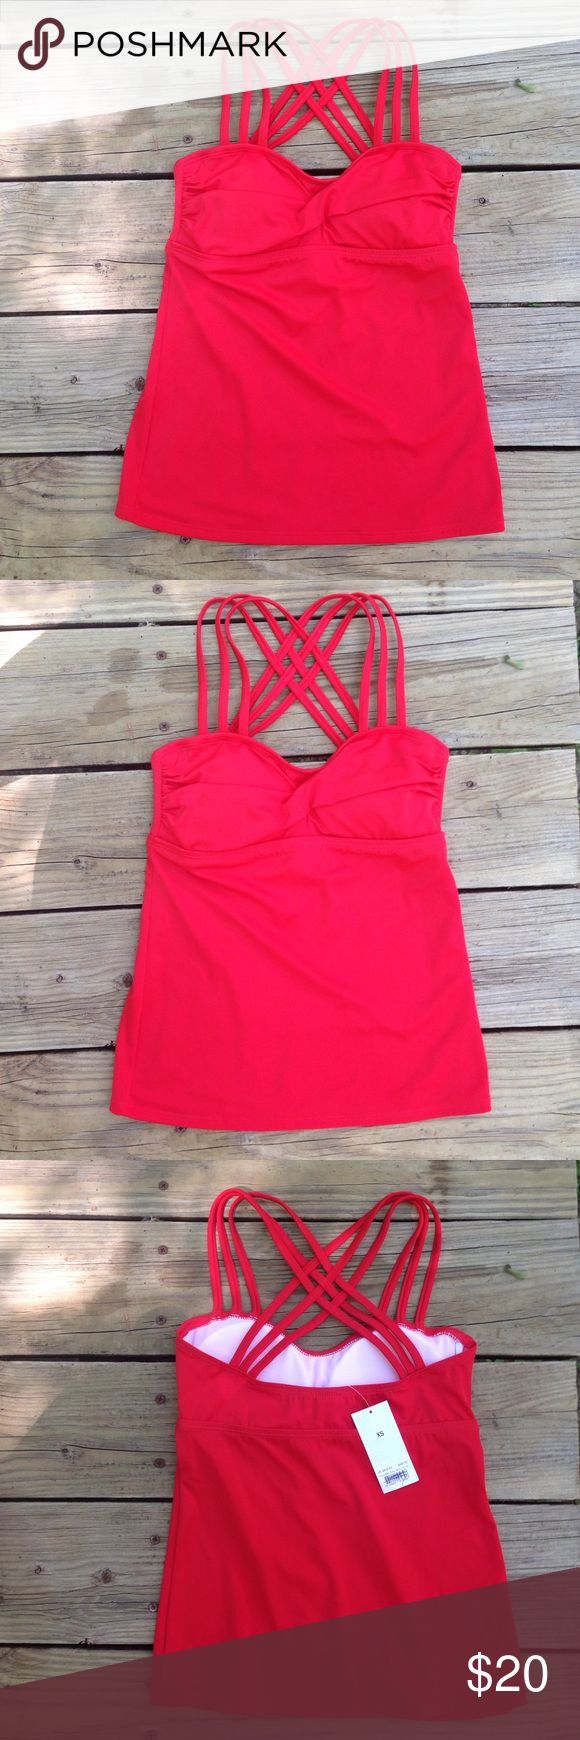 NWT Lime Ricki red tankini top Brand new beautiful, modest tankini top. Bright red. The straps cris cross in the back. Would be fun paired with a floral or patterned bottom. Would fit xxs as well. It's little. Lime Ricki Swim Bikinis